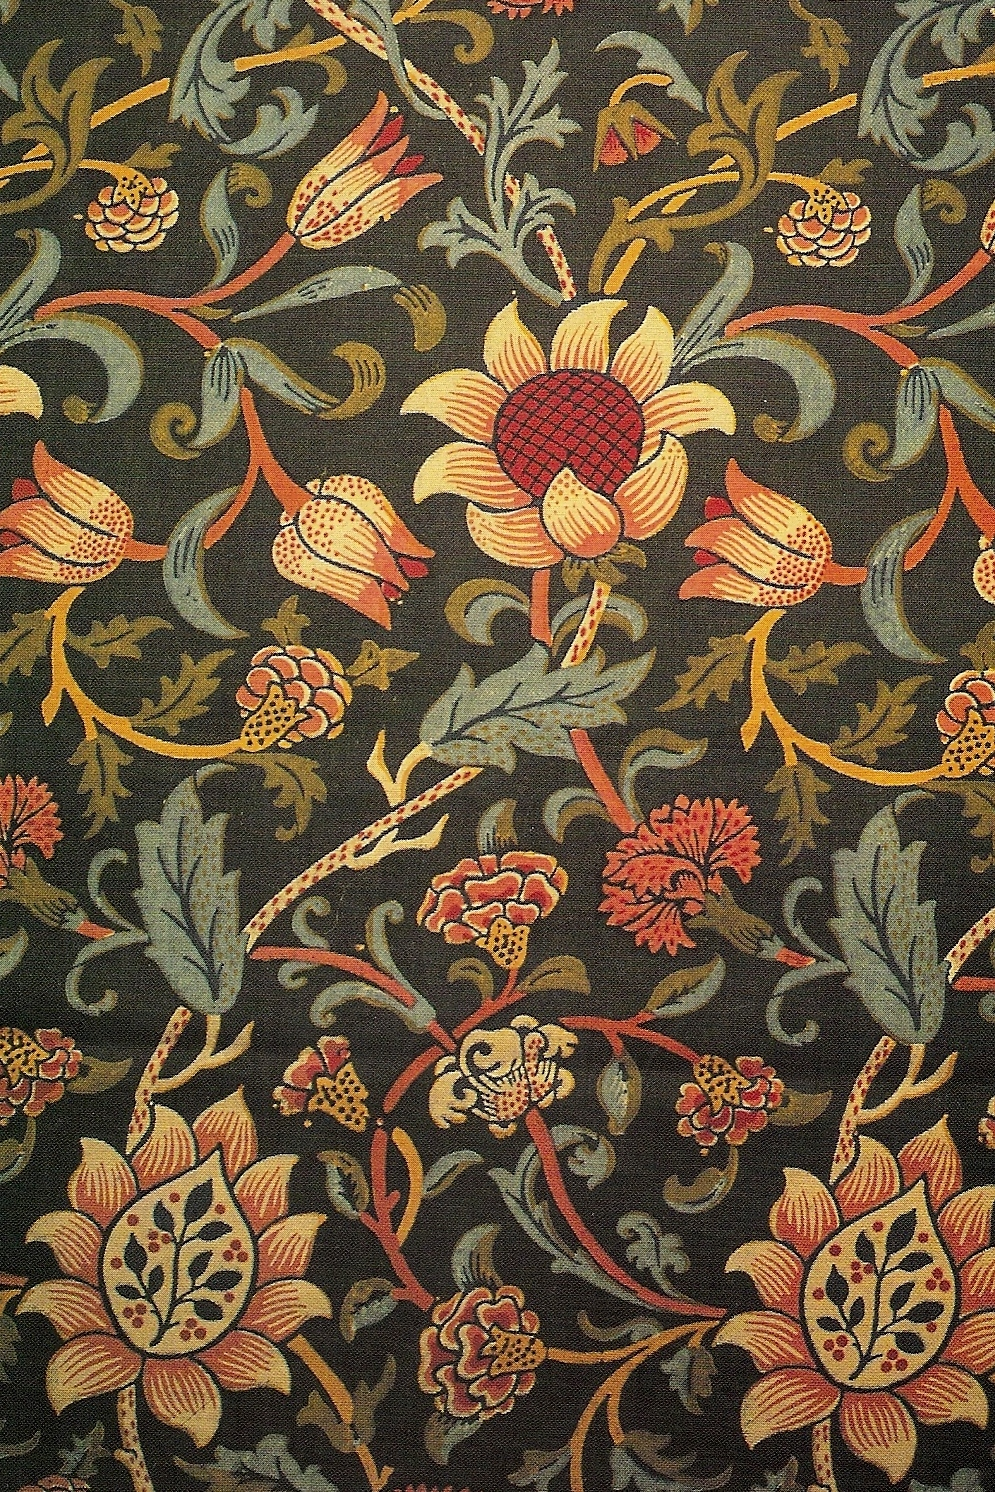 Buttsville william morris for Arts and crafts style prints